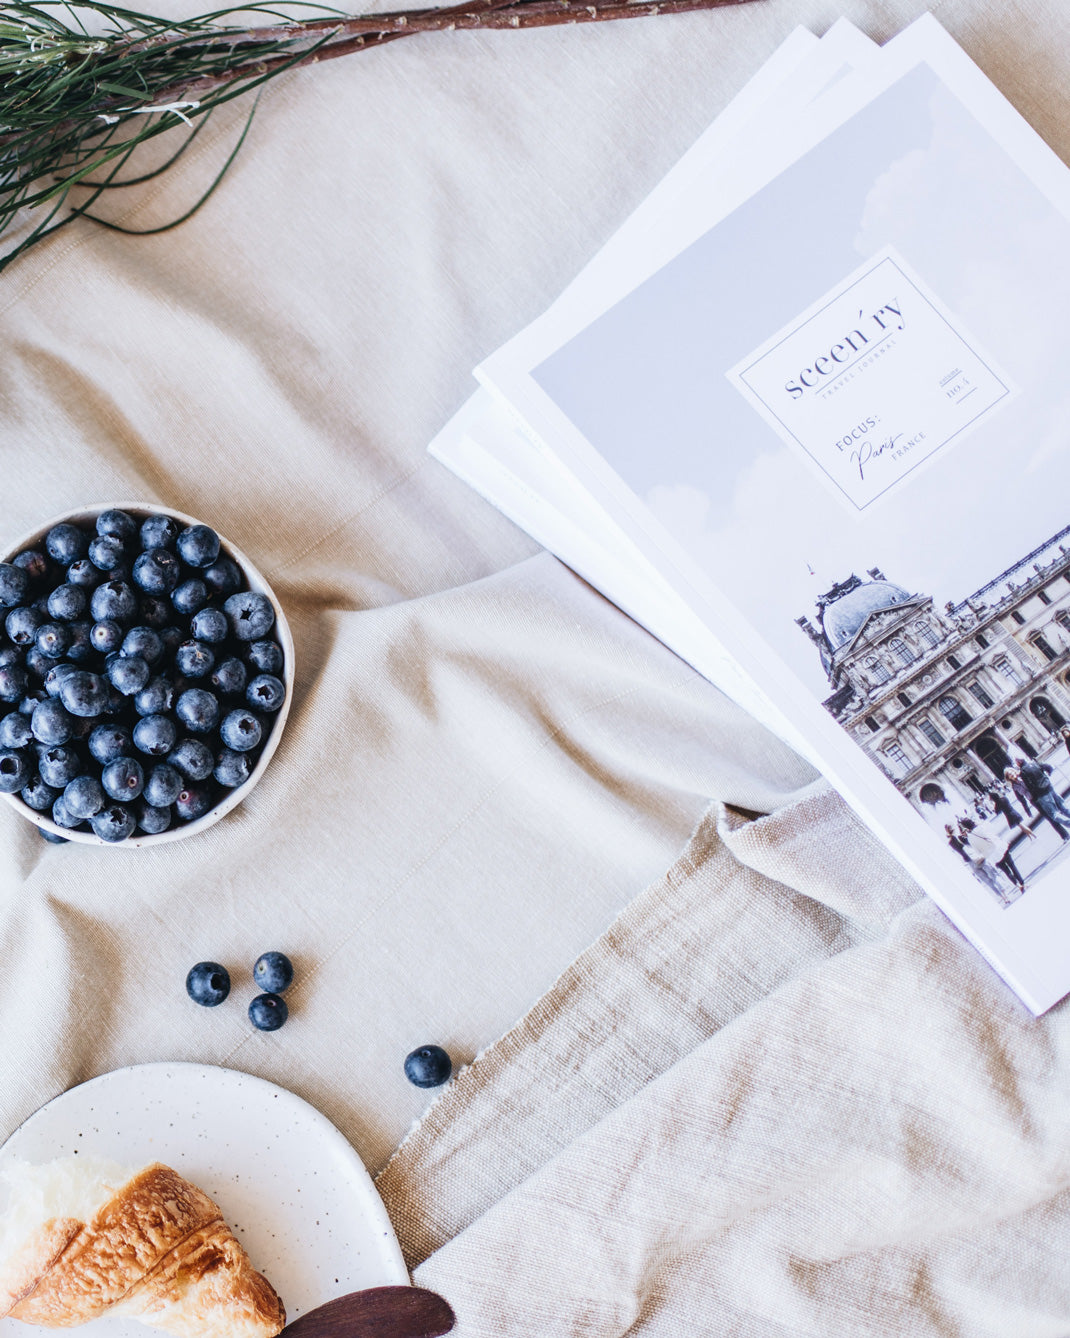 Sceen'ry magazine on the table with blueberries